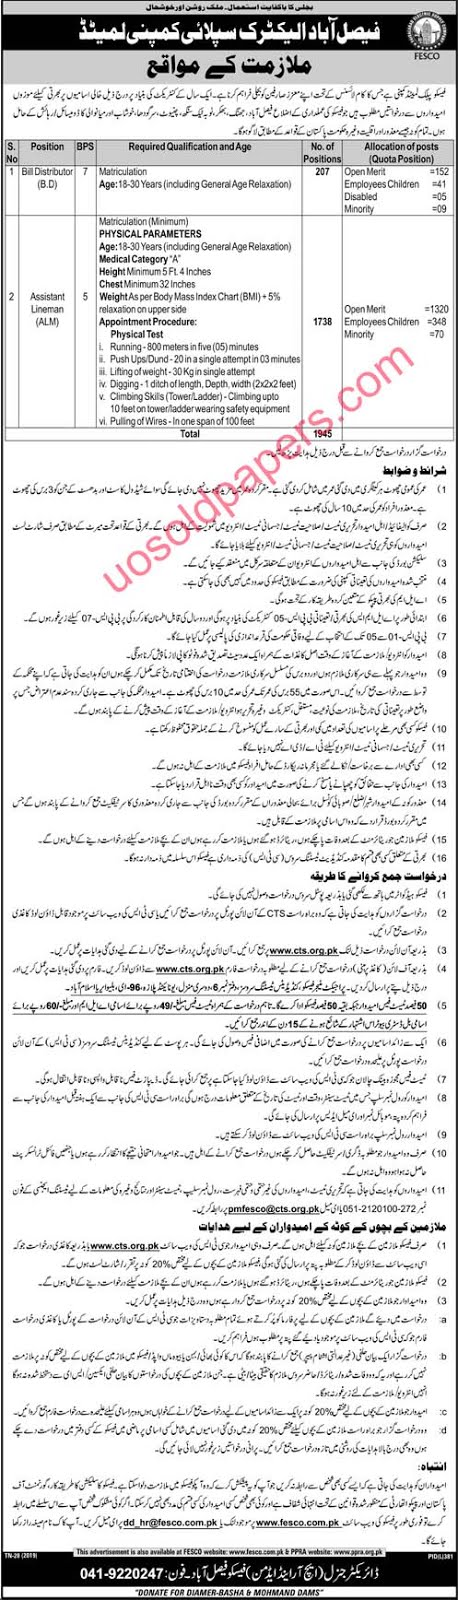 Faisalabad Electric Supply Company (FESCO)  in Faisalabad, Pakistan Date Posted: 11 August, 2019 Last Date: 24 August, 2019 Newspaper: Jang Jobs